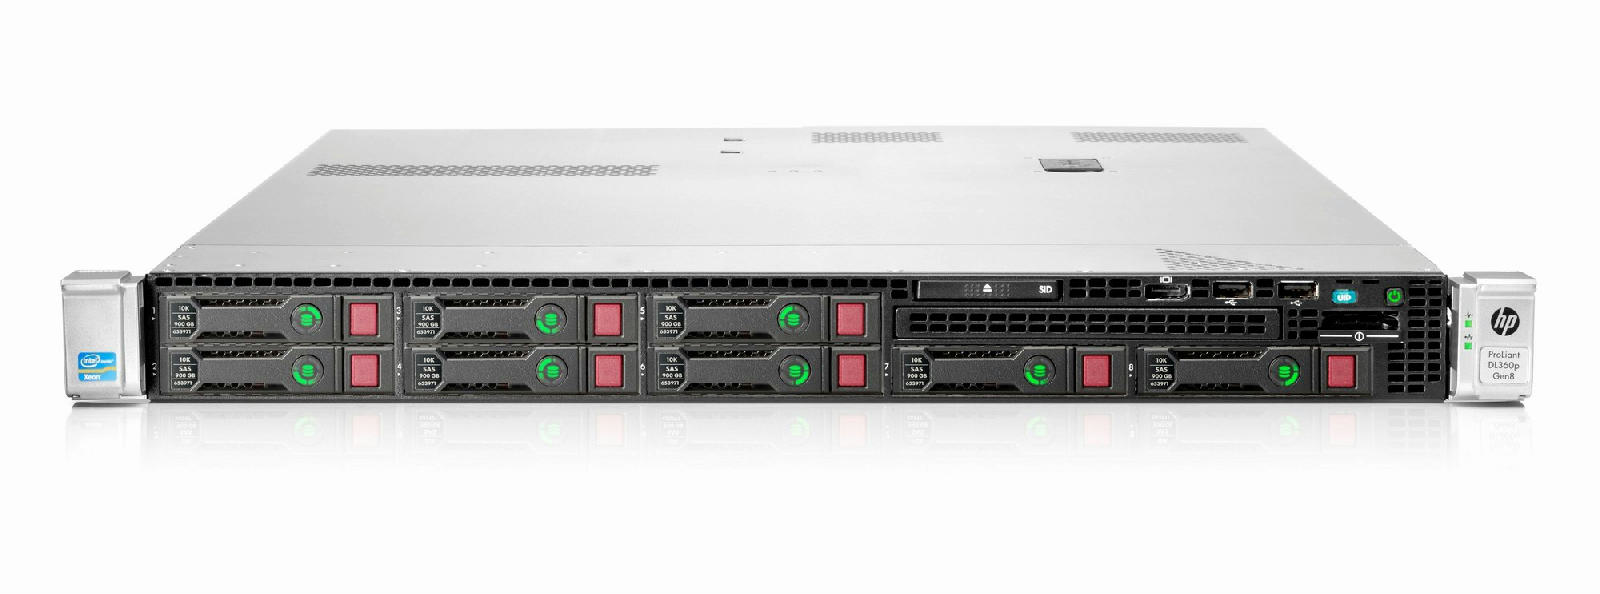 hp proliant dl360p gen8 1u 2xquad core e5 2643 xeon 32gb ram server 64 bit instock901. Black Bedroom Furniture Sets. Home Design Ideas